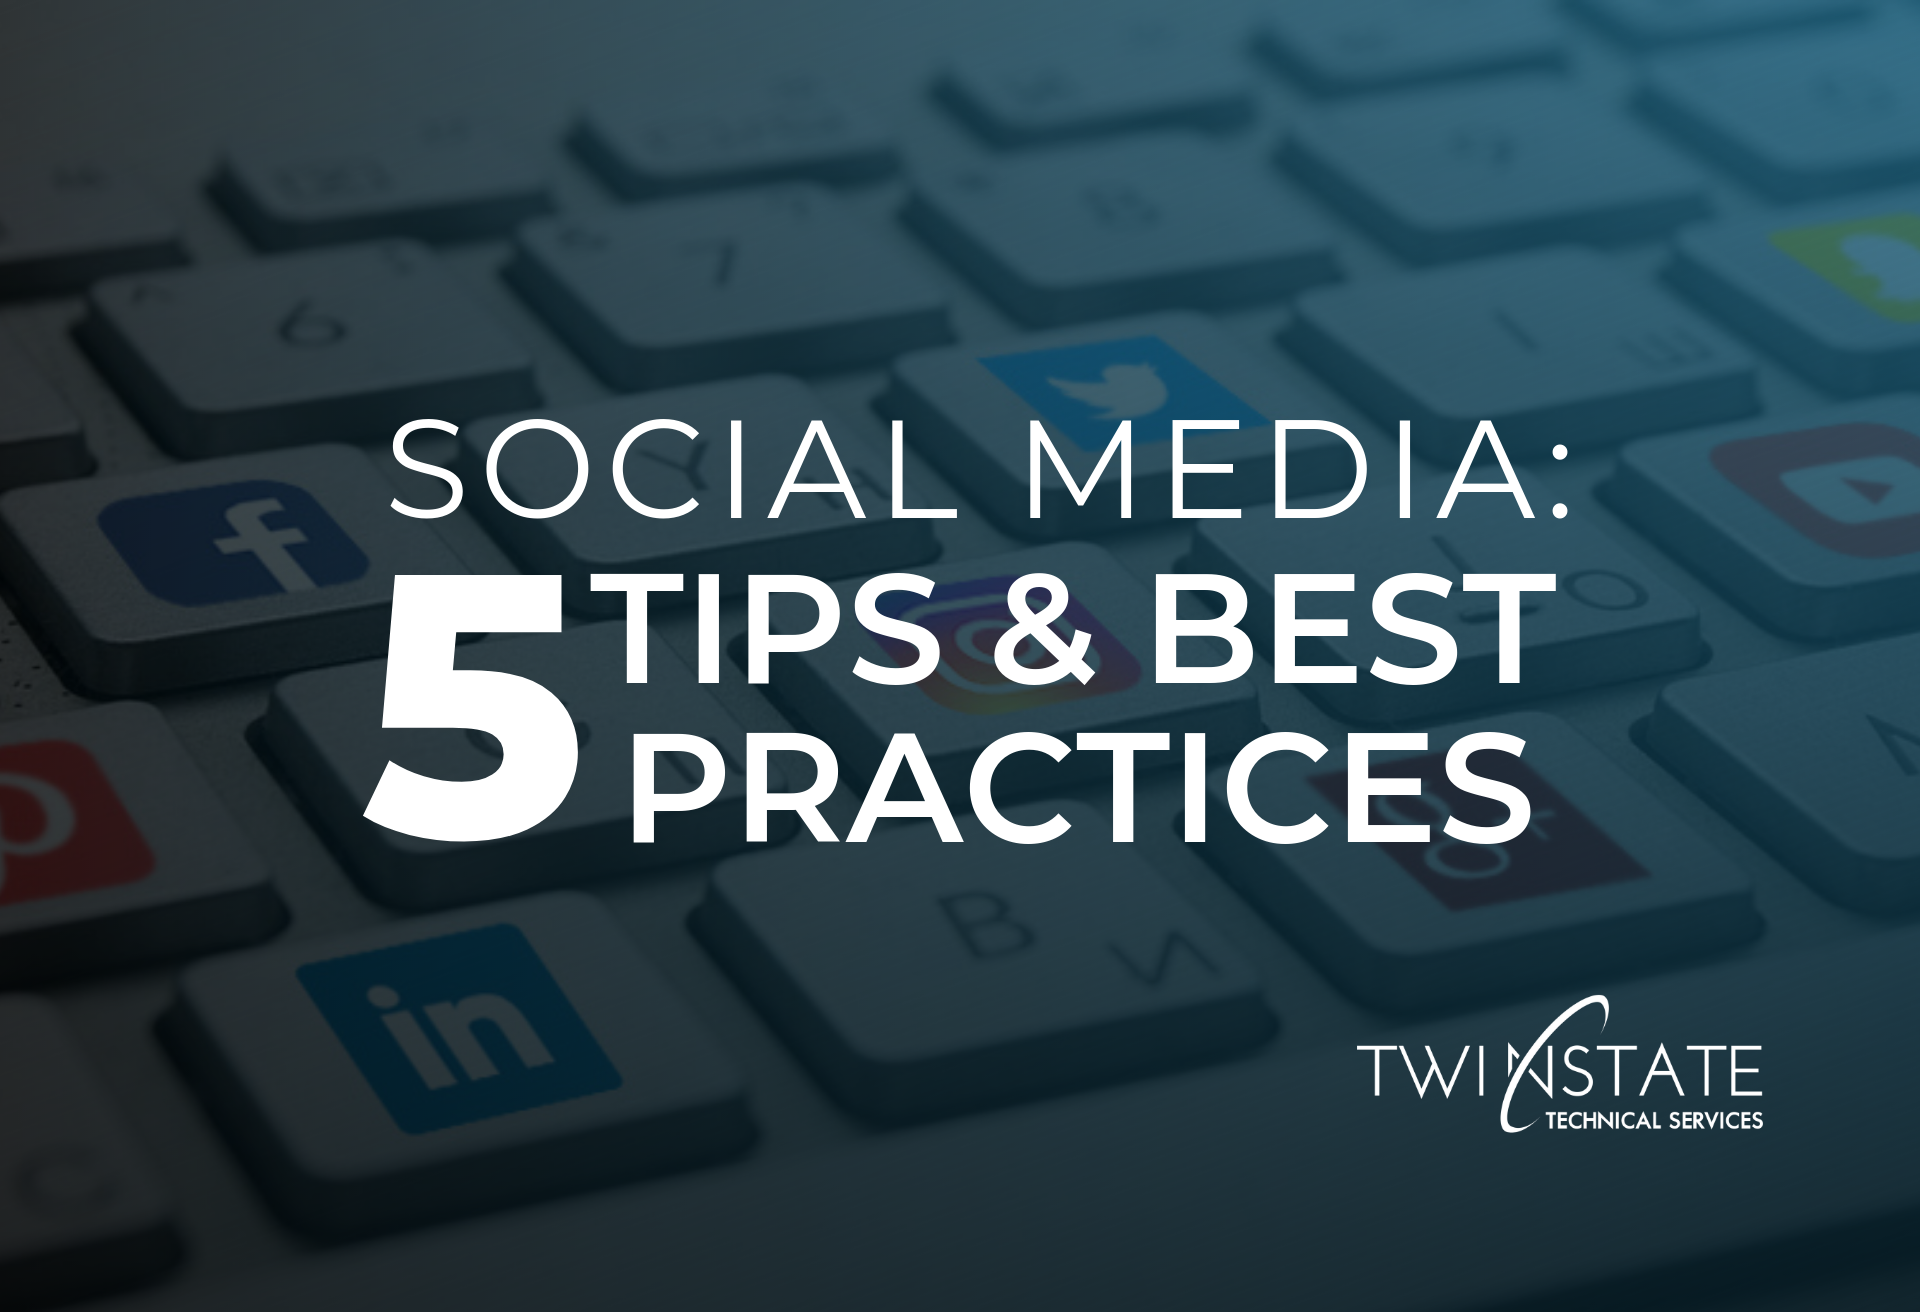 Social Media Tips and Best Practices